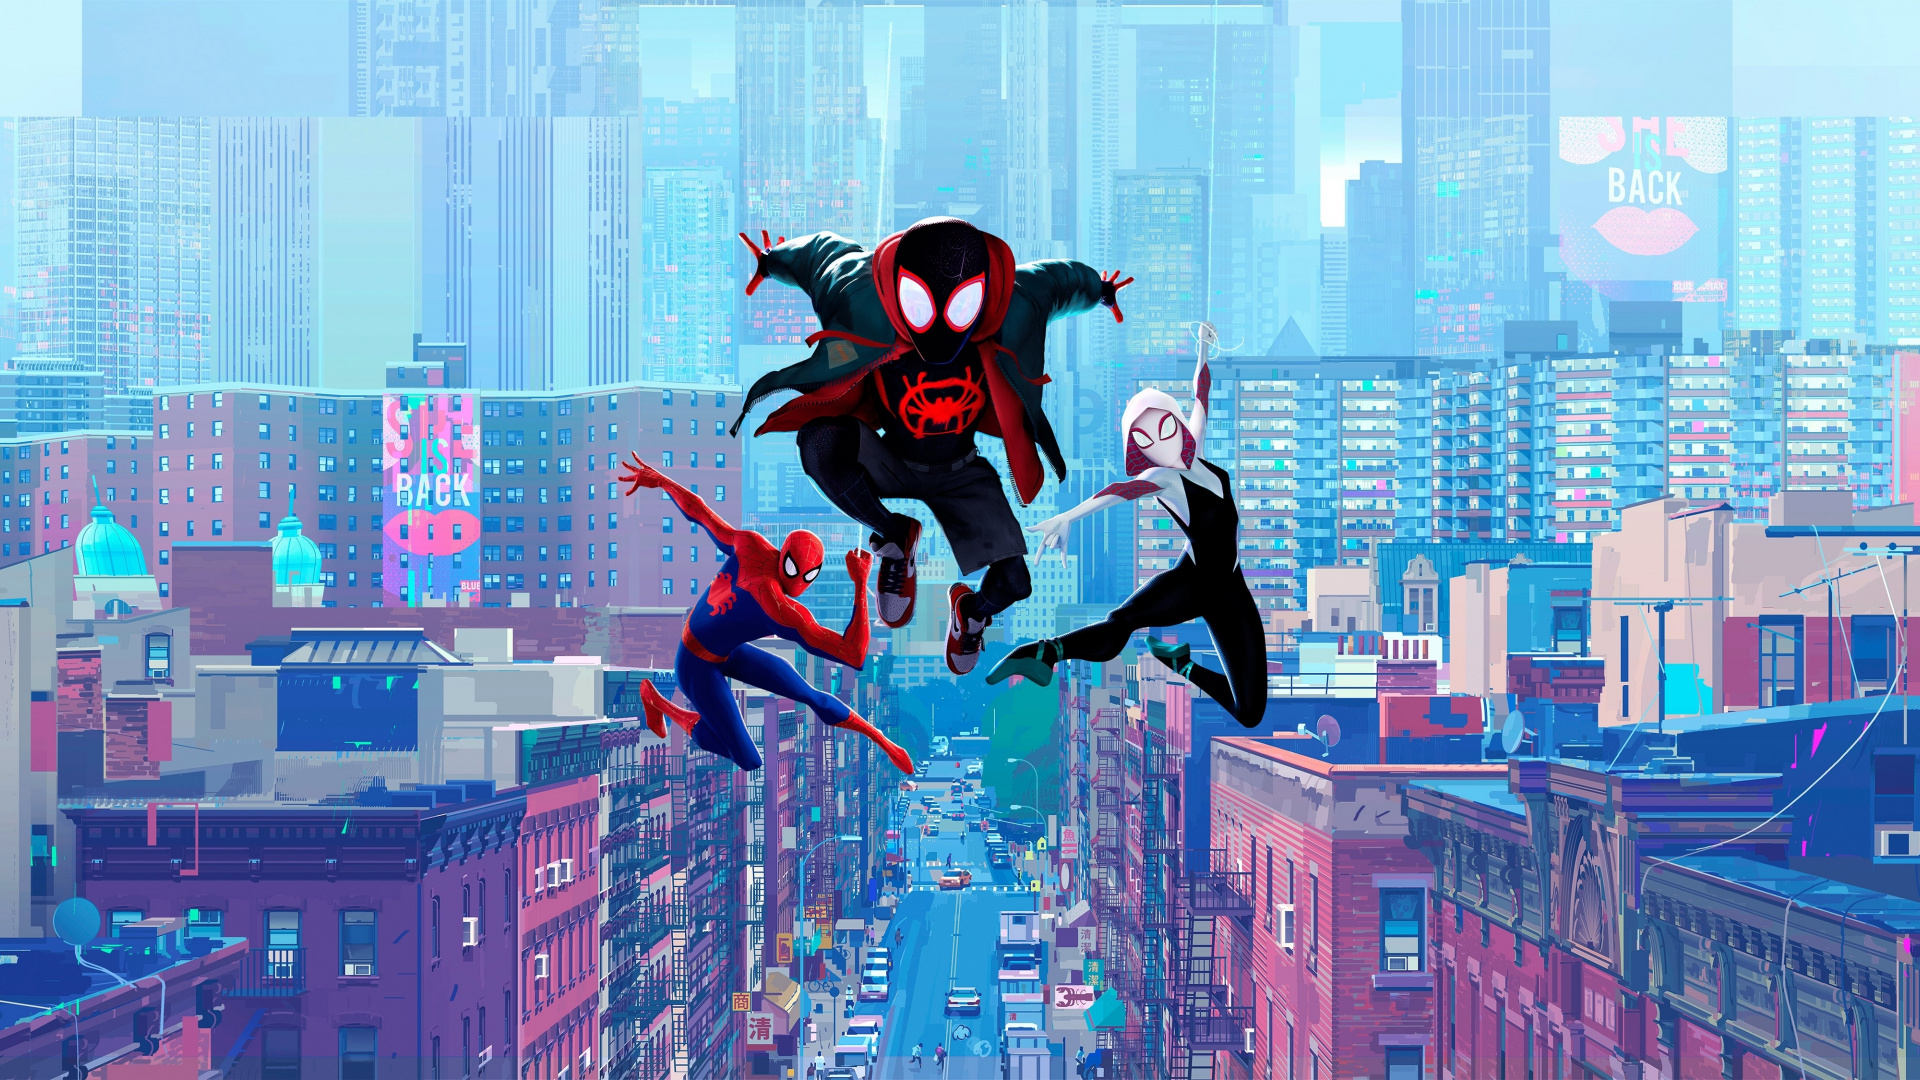 Spiderman: Into the Spiderverse is a brilliant superhero film, a technological marvel and a great example of on the job training done right!